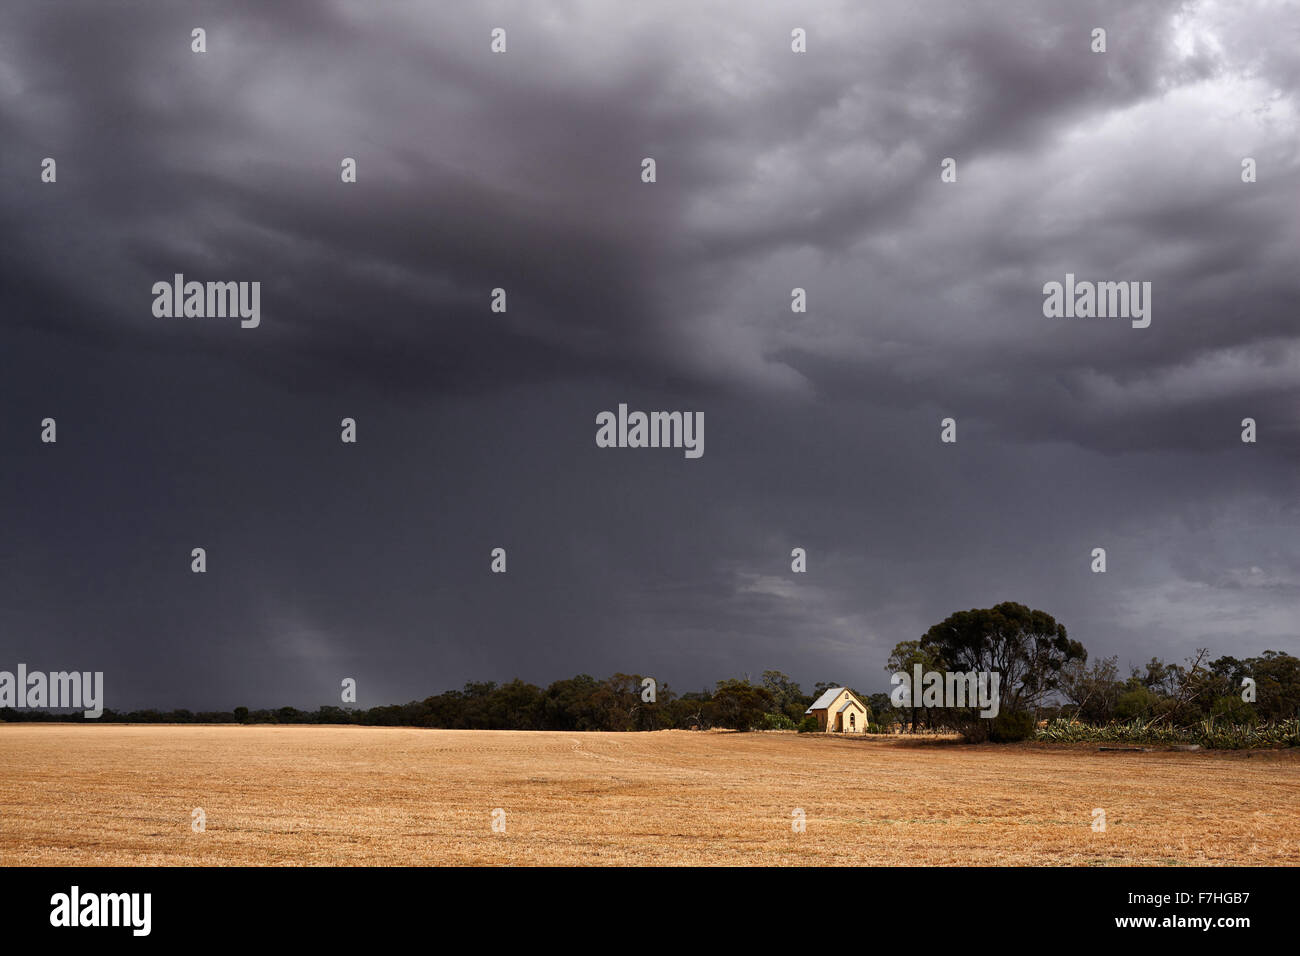 Summer storm moves over harvested cereal crop. Stock Photo